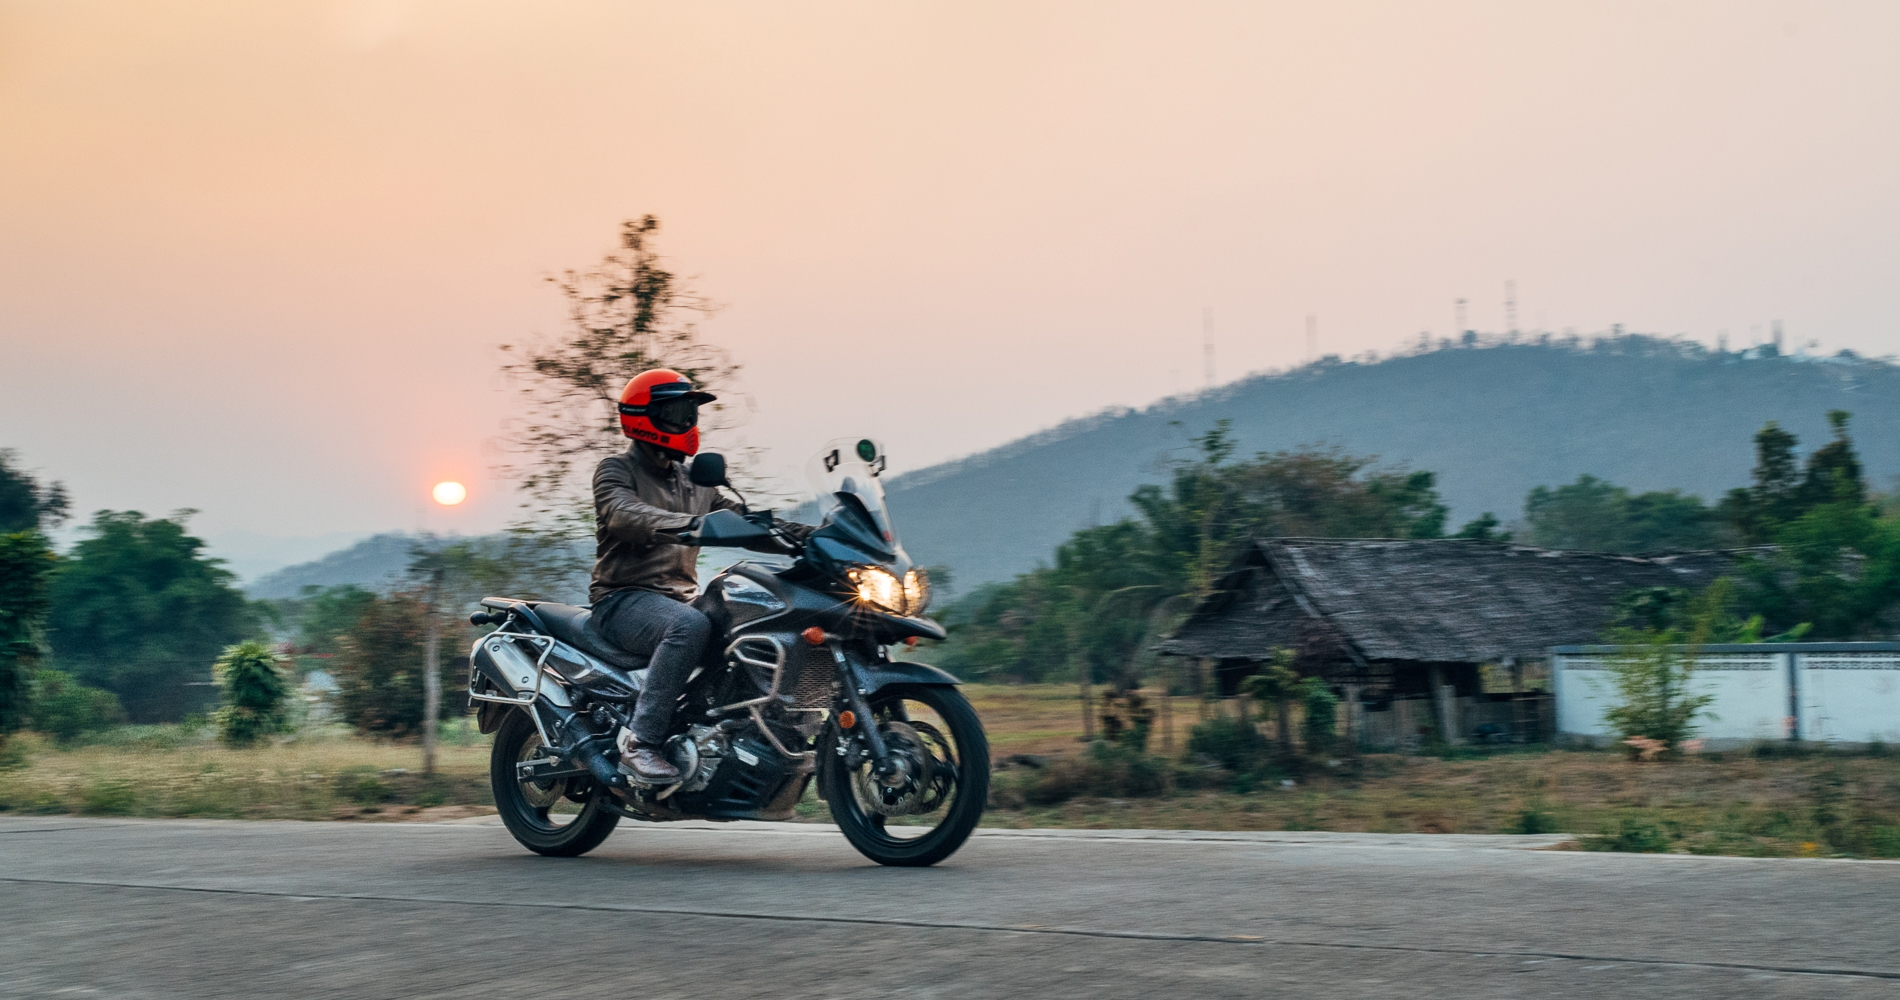 A motorcycle vacation abroad is easier and cheaper than you think